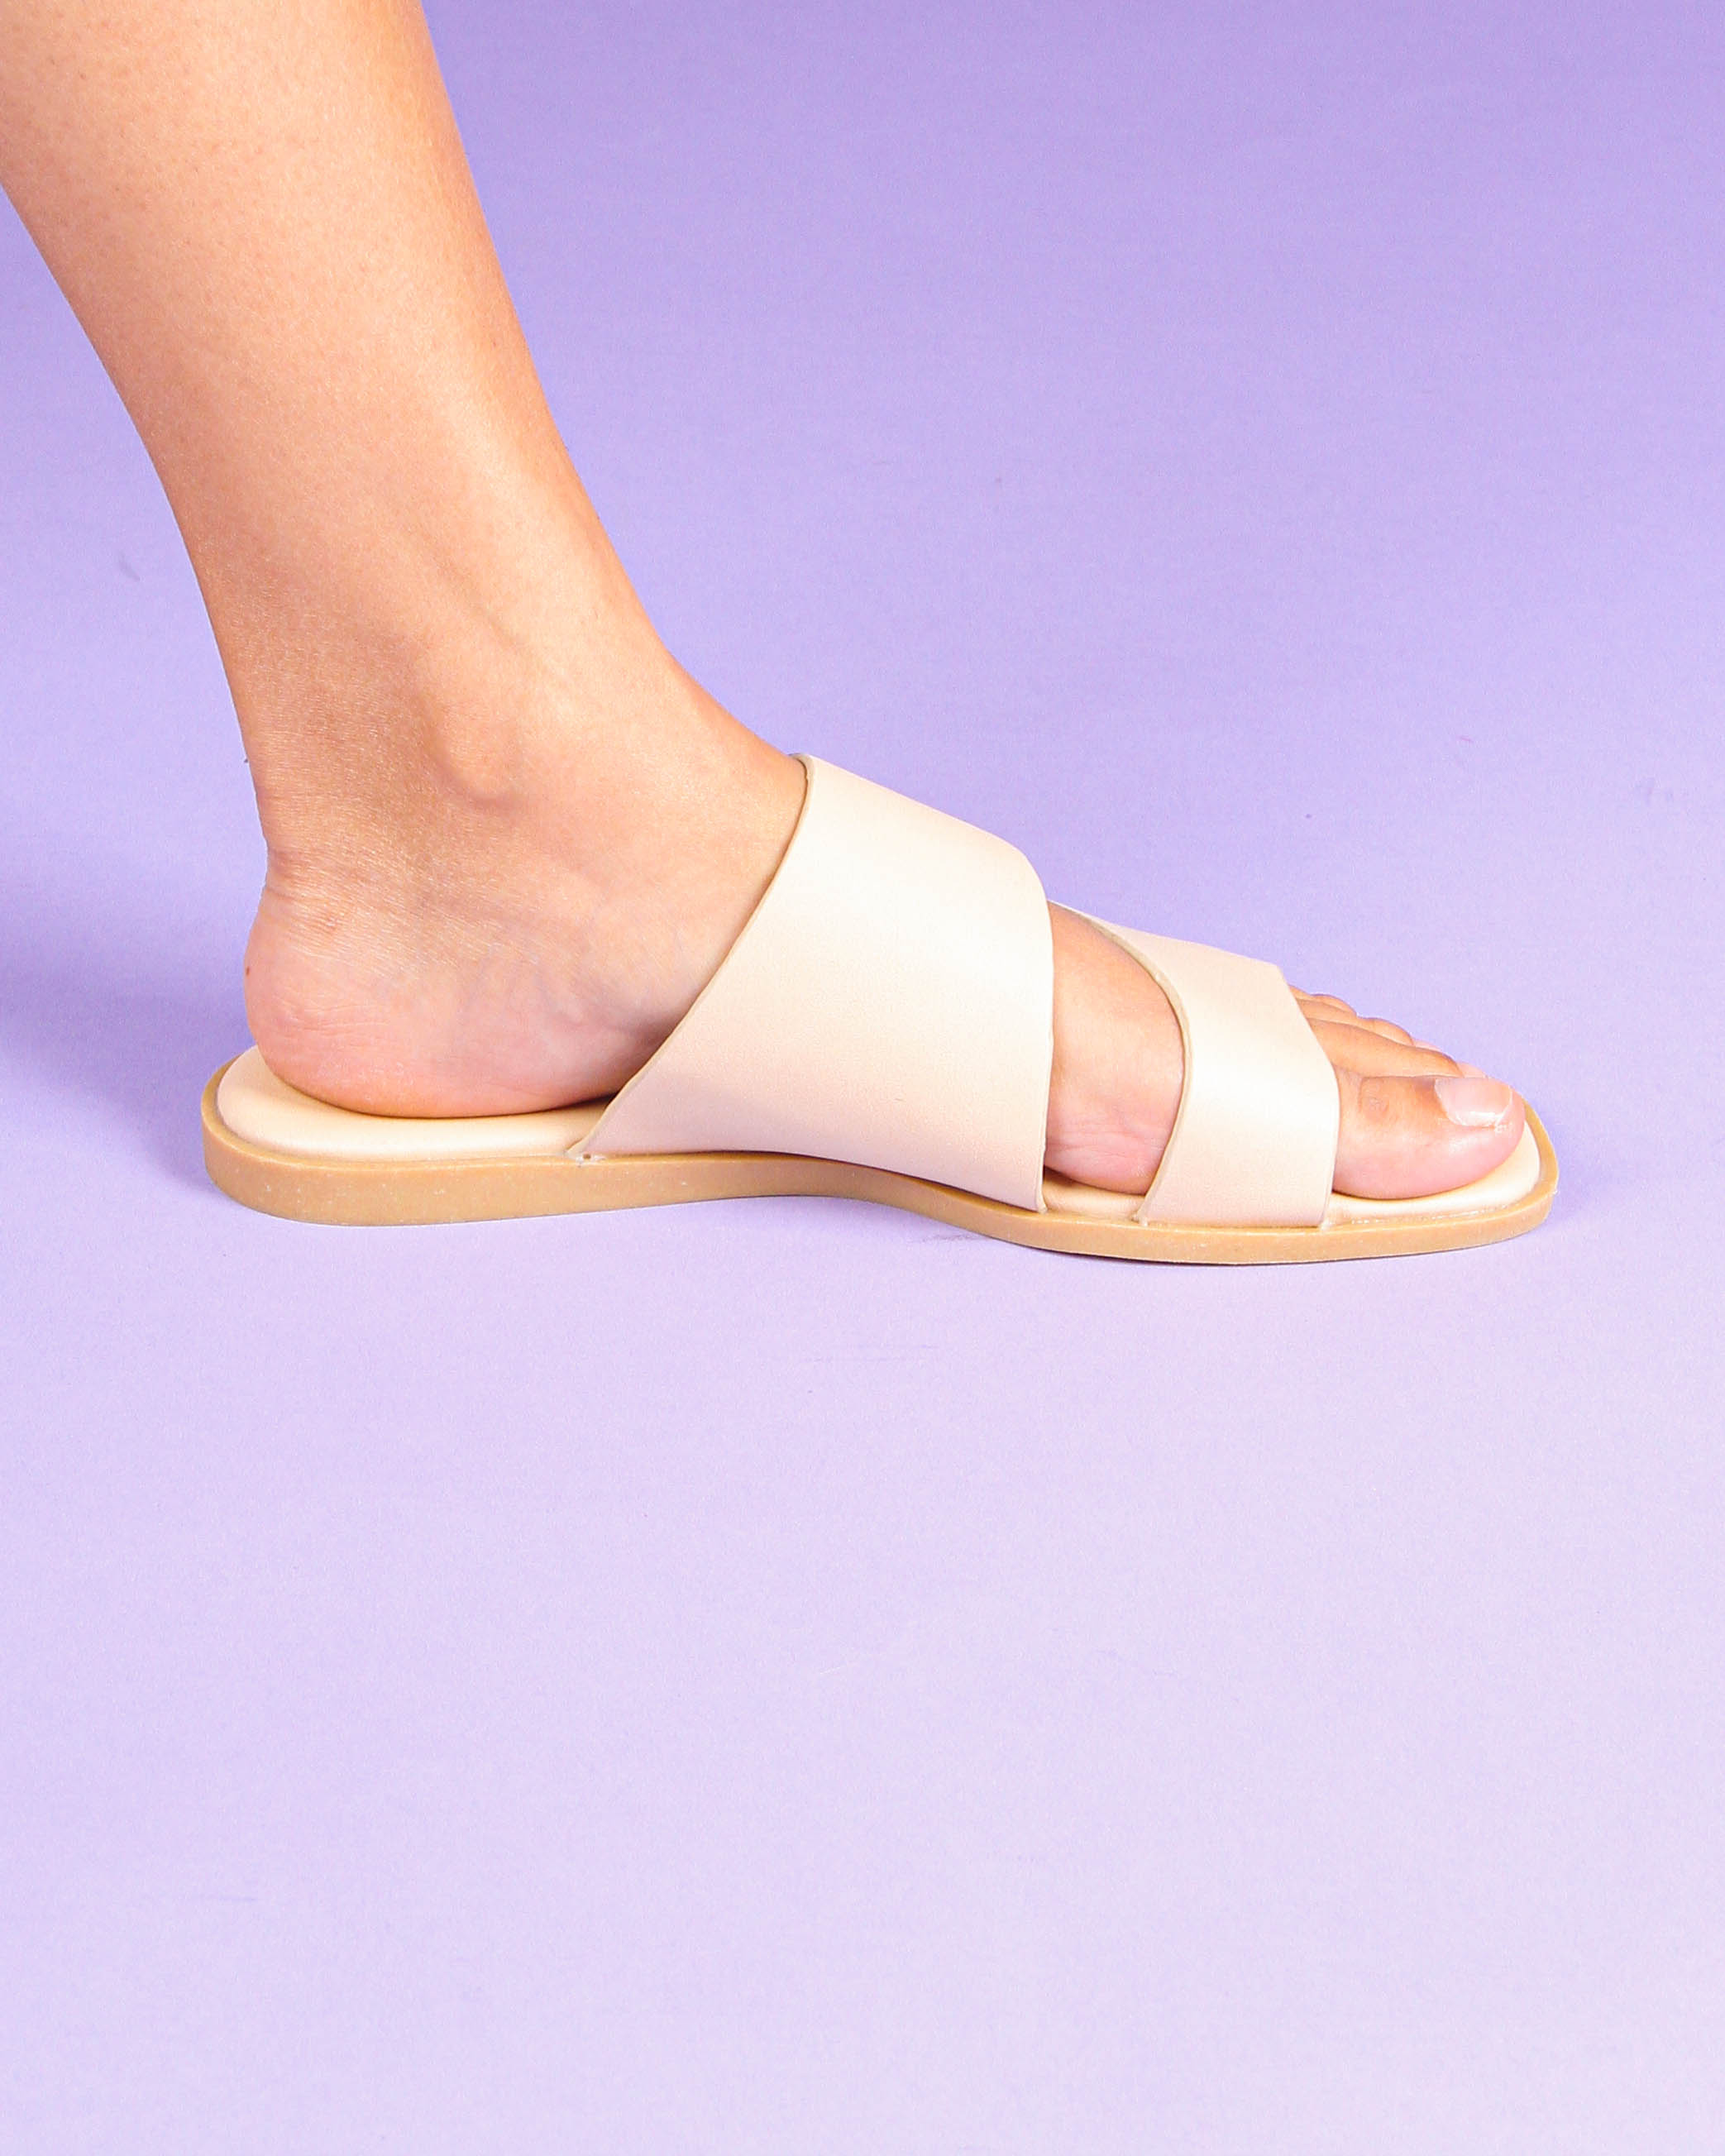 Duo Strappy Sandals in Beige